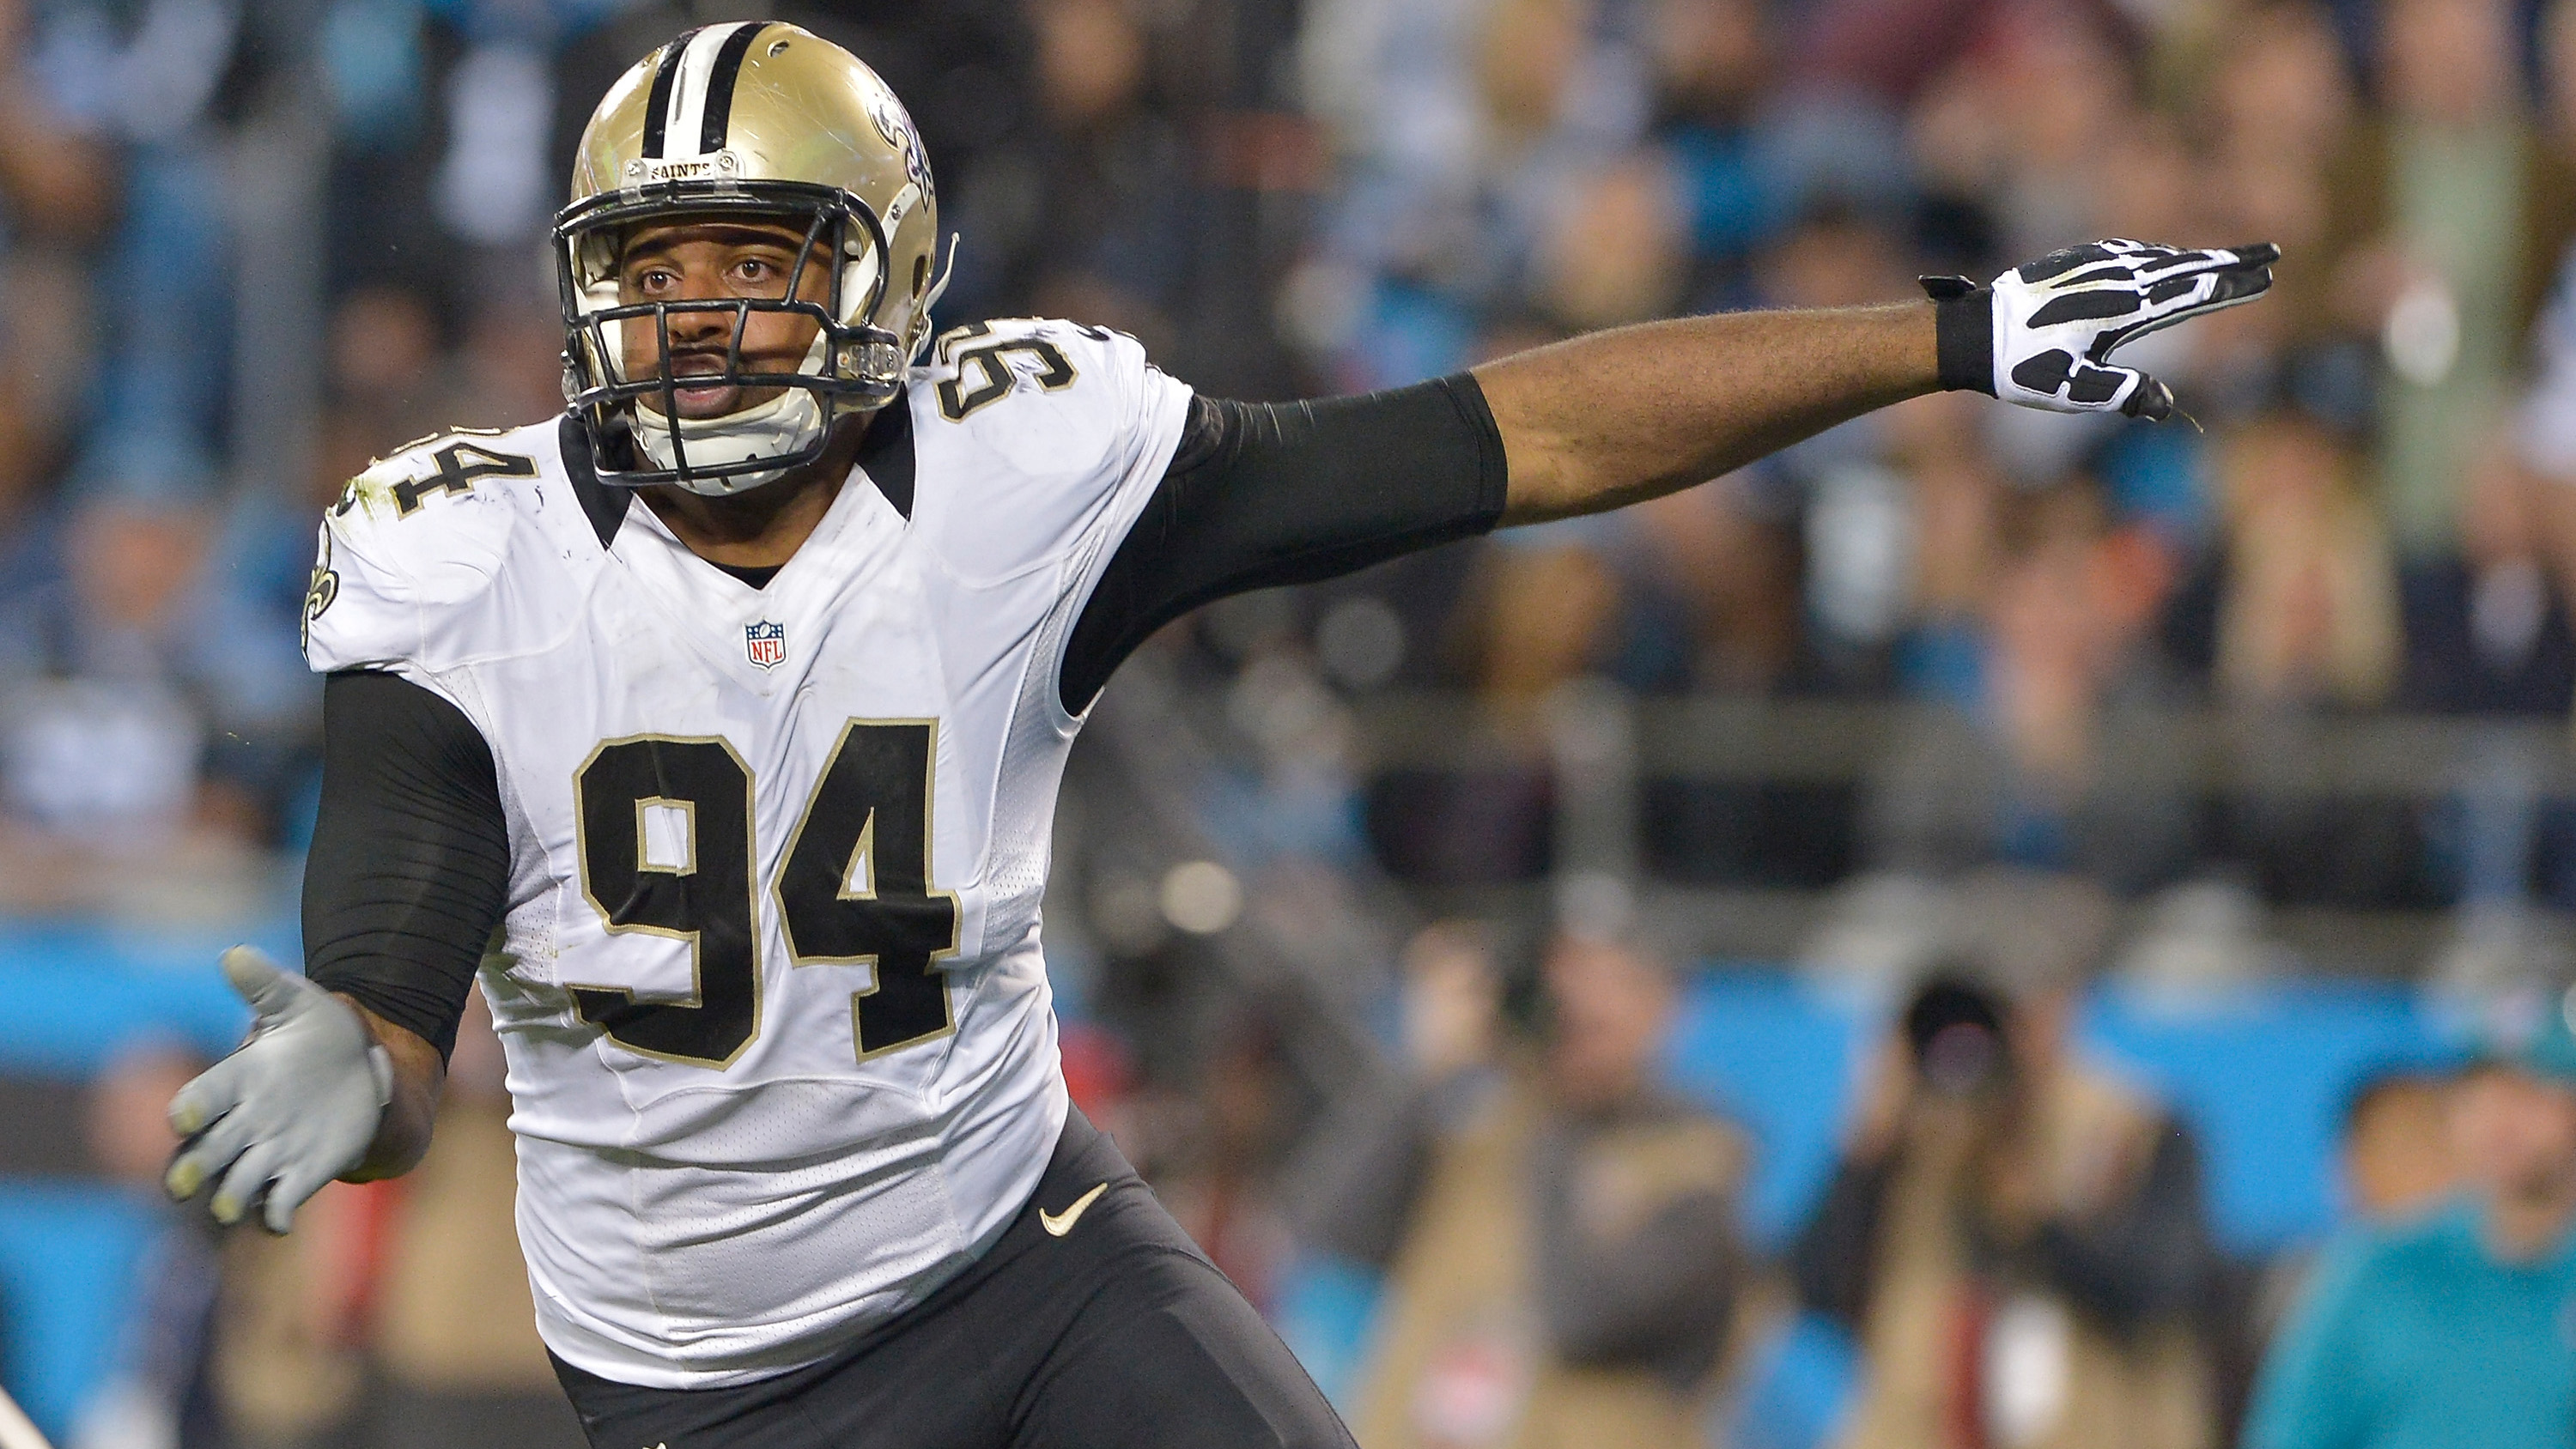 New Orleans Saints sign Cameron Jordan to contract extension